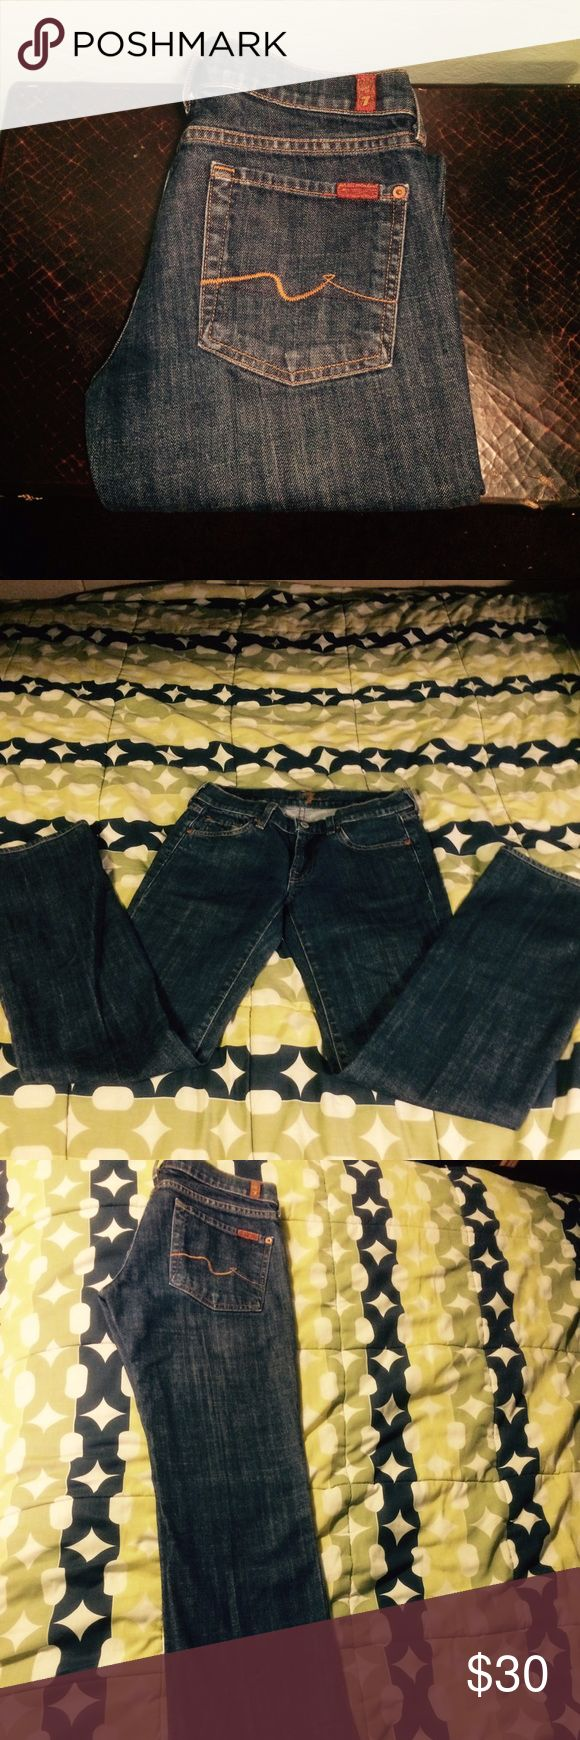 7 jeans Dark wash 7 for all mankind straight leg with a little flaire jeans, great shape! 7 For All Mankind Jeans Straight Leg